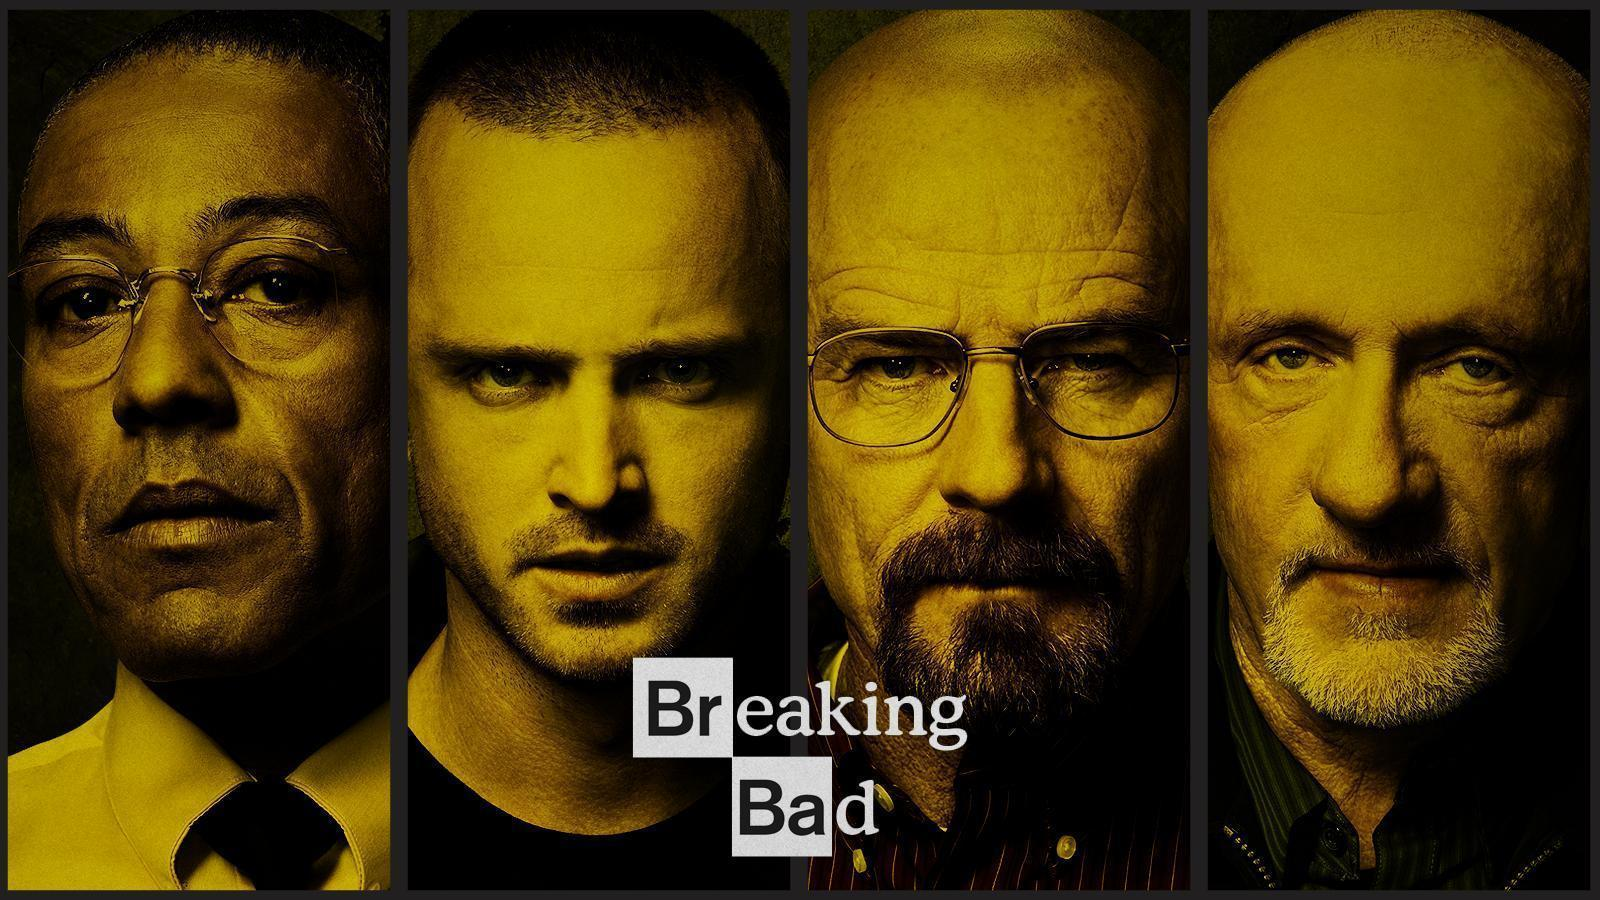 Bad Serie Breaking Bad Wallpapers Wallpaper Cave